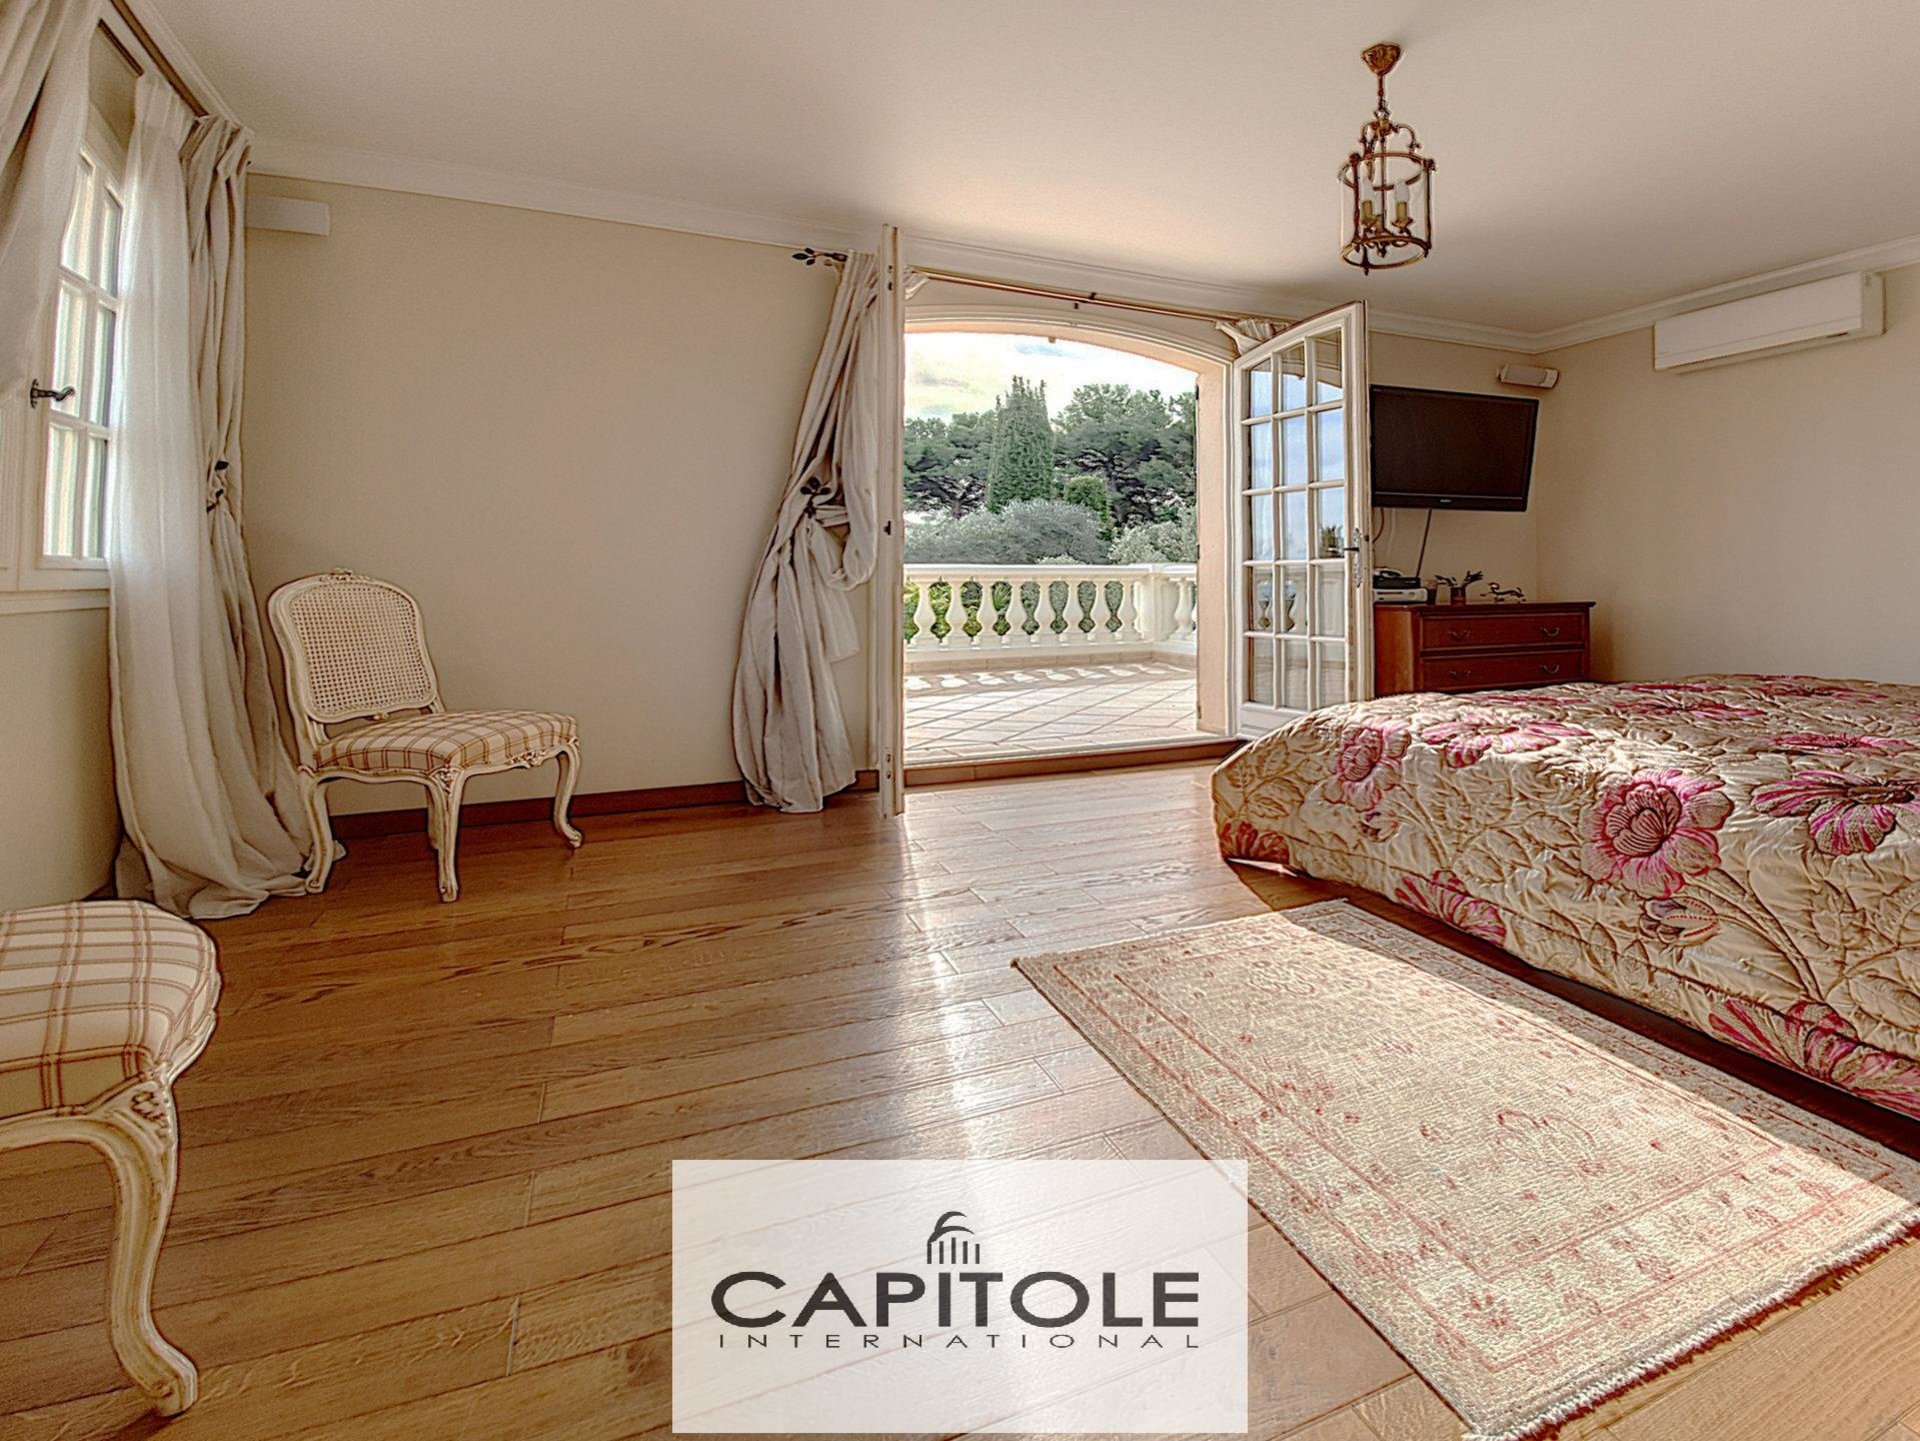 Biot - For sale Luxurious villa of 355m² with pool